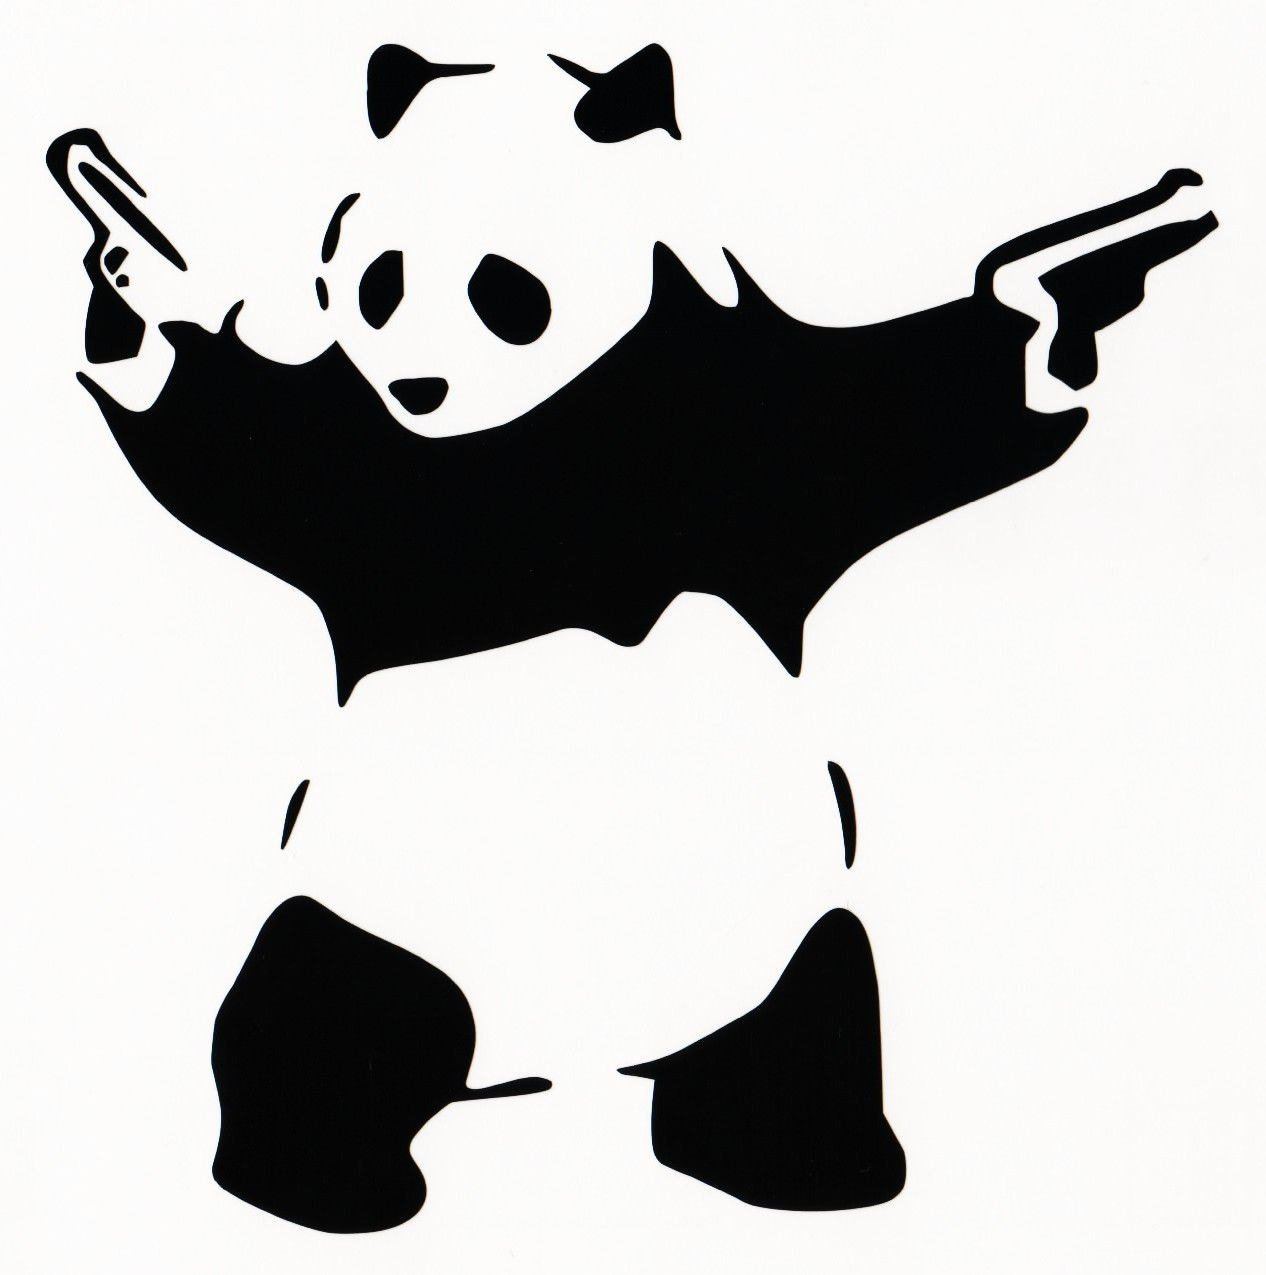 Banksy panda with guns sticker truck stickers logos and vinyl - Amazon Com Panda With Guns Sticker Decal Car Bumper Bansky Windows Art Vinyl Truck 5 5 Inches White Arts Crafts Sewing